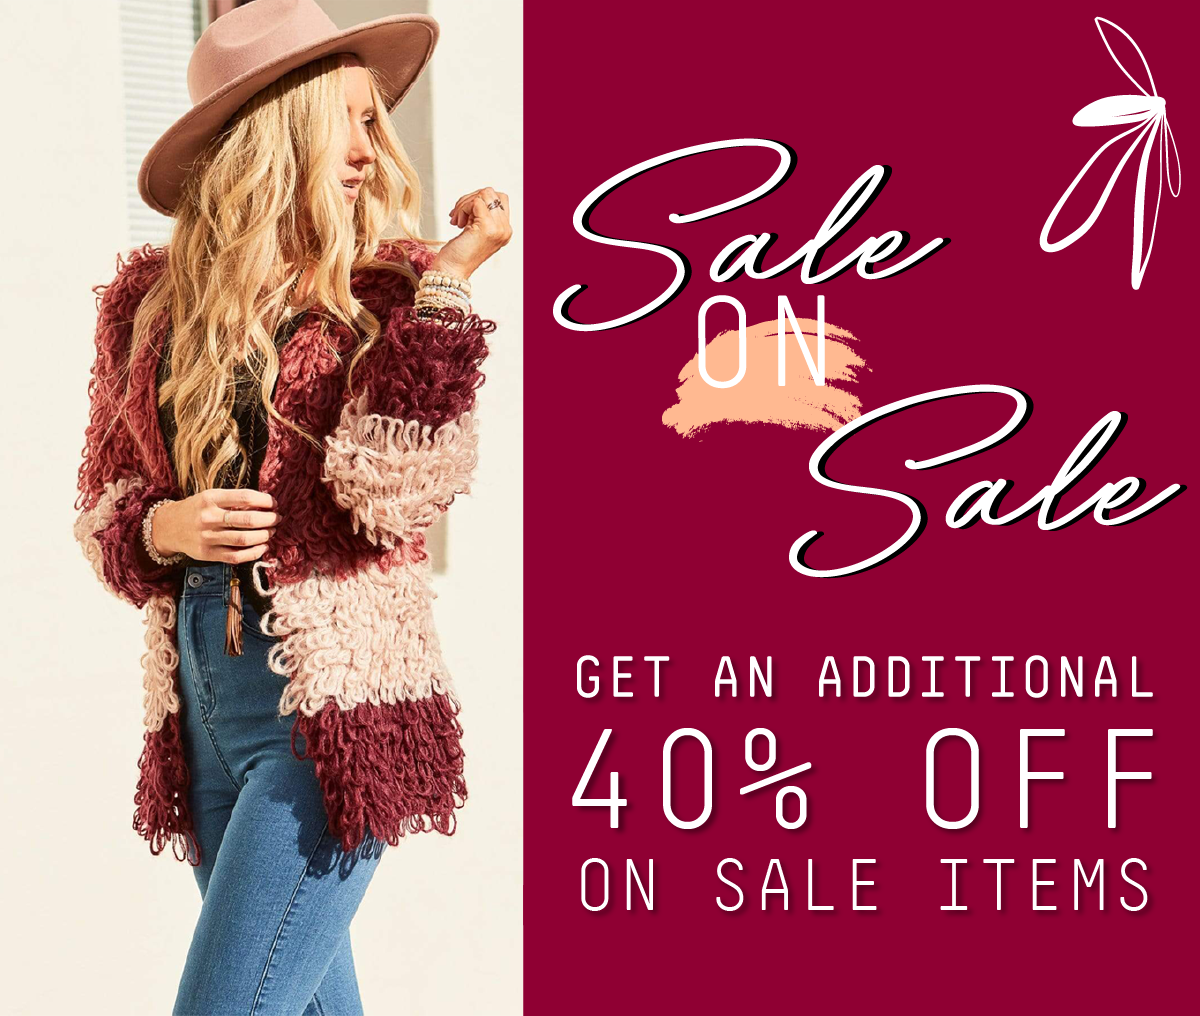 Sale On Sale: Get an extra 40% off sale for a limited time